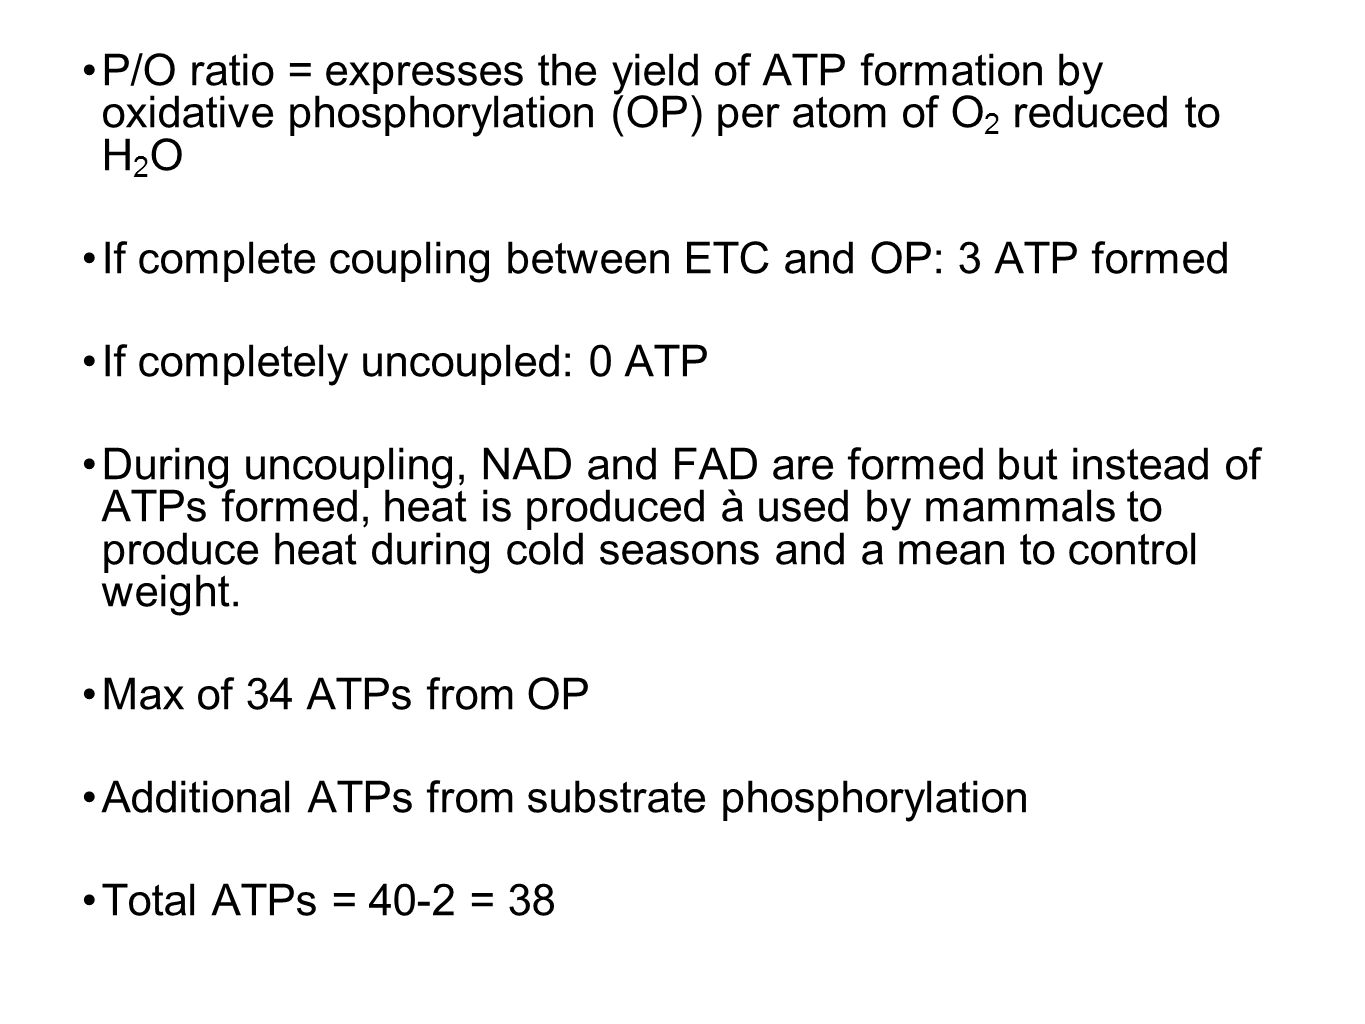 P/O ratio = expresses the yield of ATP formation by oxidative phosphorylation (OP) per atom of O 2 reduced to H 2 O If complete coupling between ETC and OP: 3 ATP formed If completely uncoupled: 0 ATP During uncoupling, NAD and FAD are formed but instead of ATPs formed, heat is produced à used by mammals to produce heat during cold seasons and a mean to control weight.